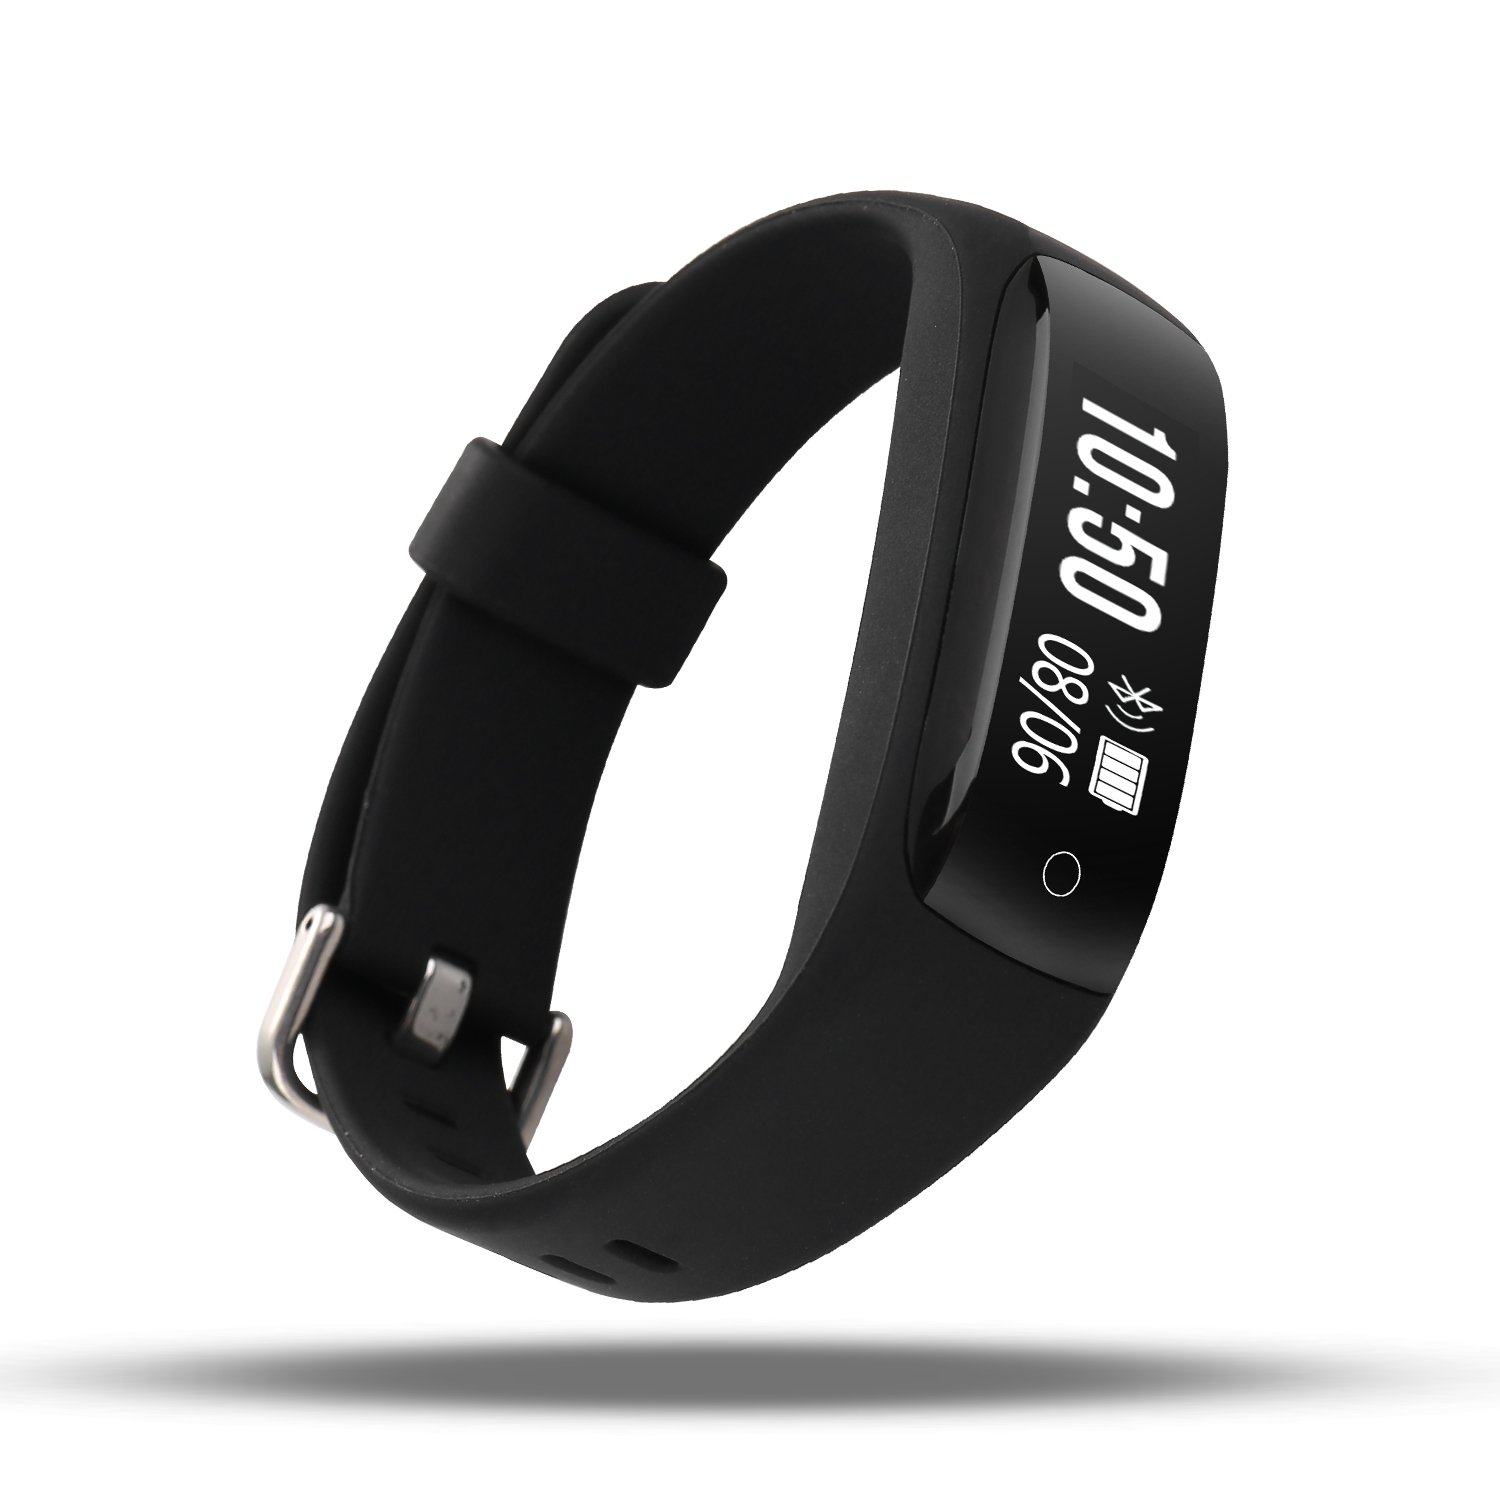 fitness cheap you watches tracker never ve youve best wesoo imore trackers of watch heard in